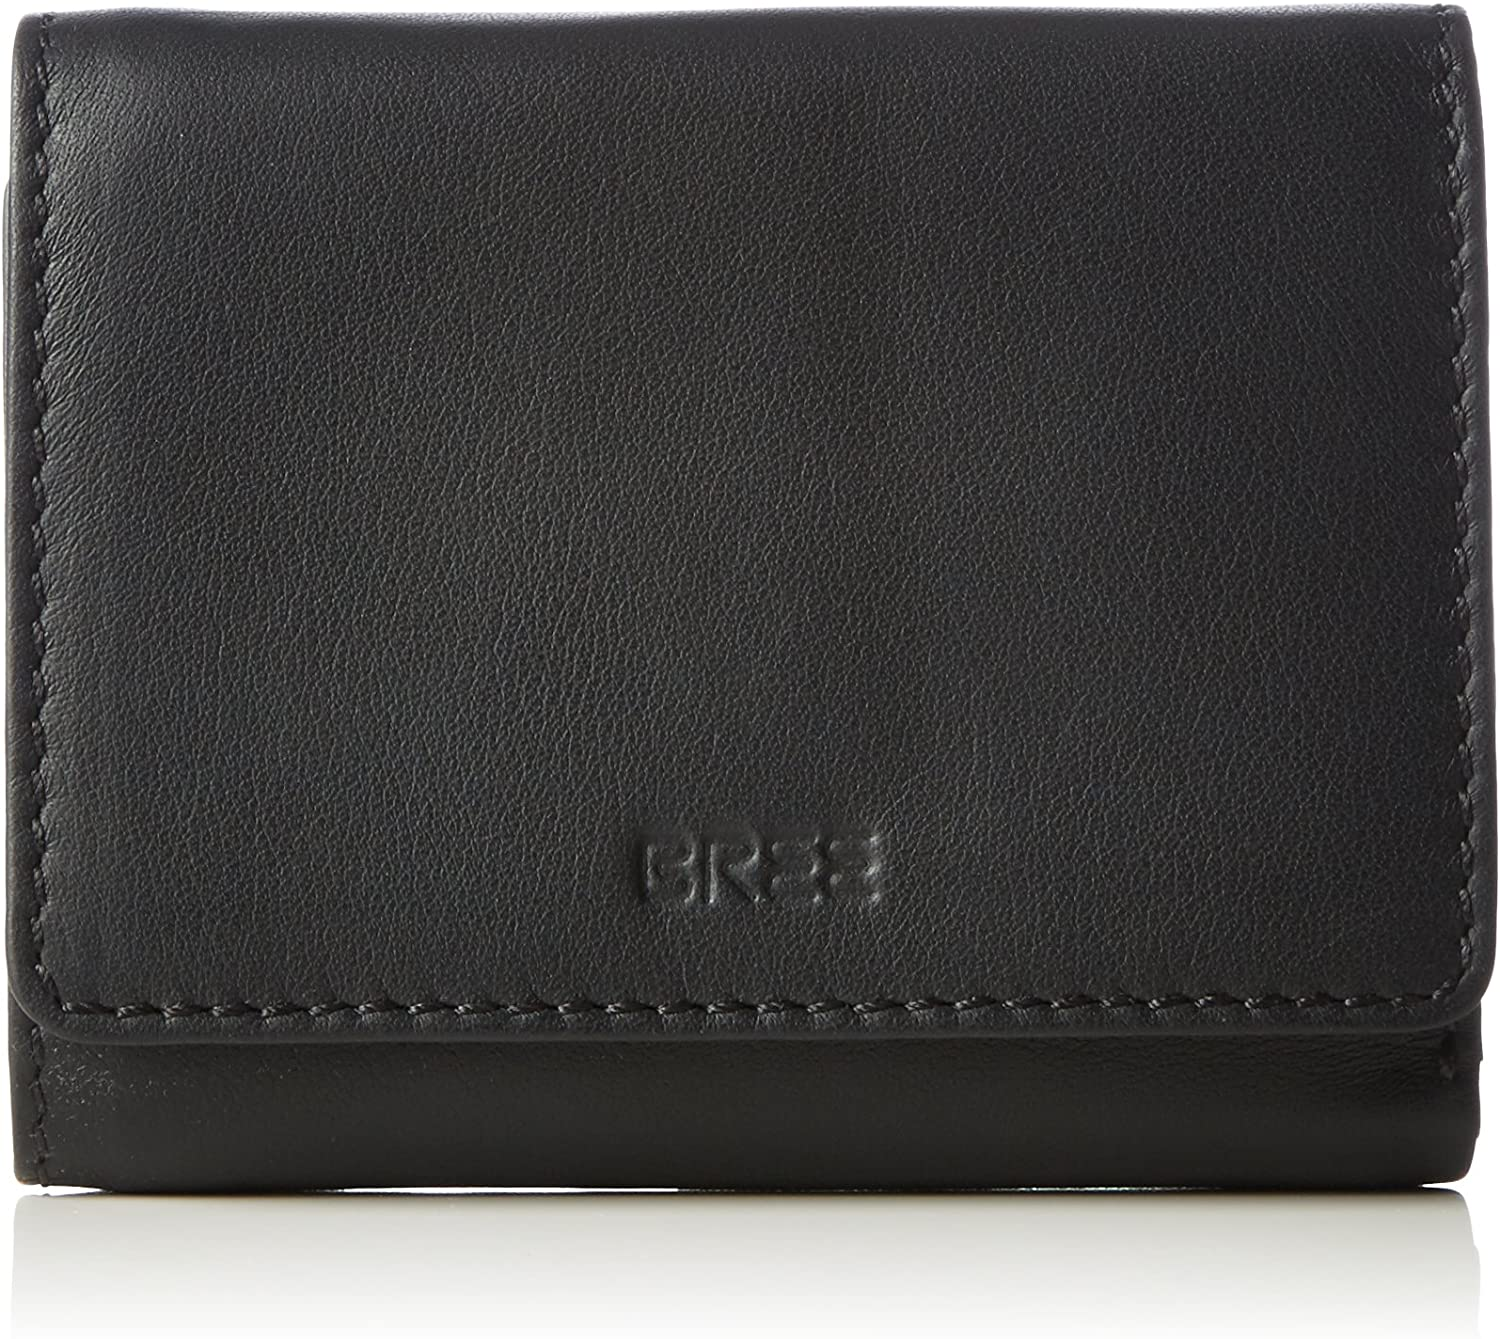 BREE Liv 106, Unisex Adults' Wallets